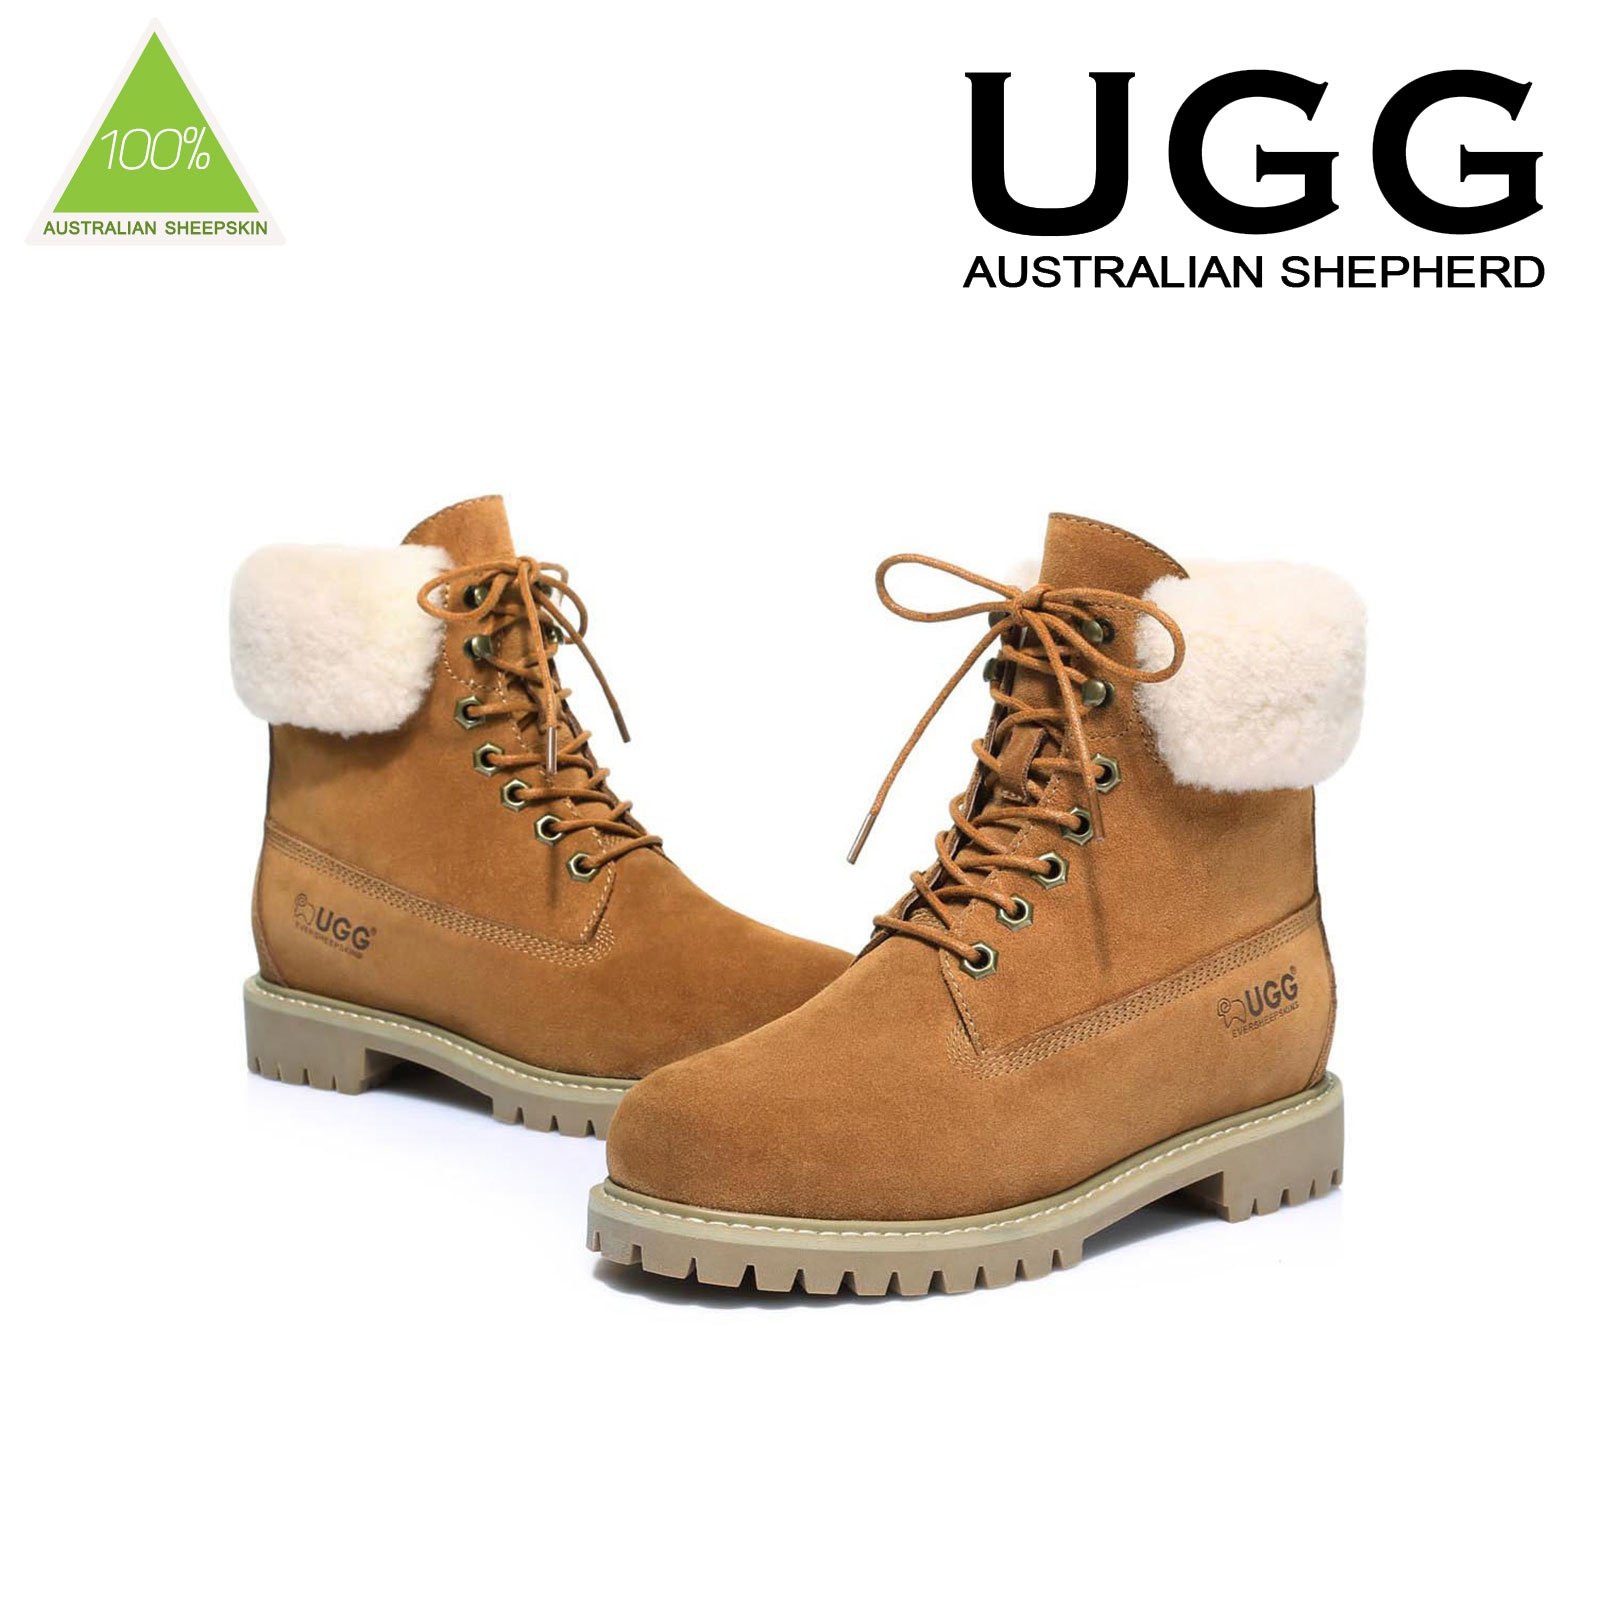 UGG-Boots-Australian-wool-Genuine-Hope-Ladies-Fashion-with-Front-Lace-lining